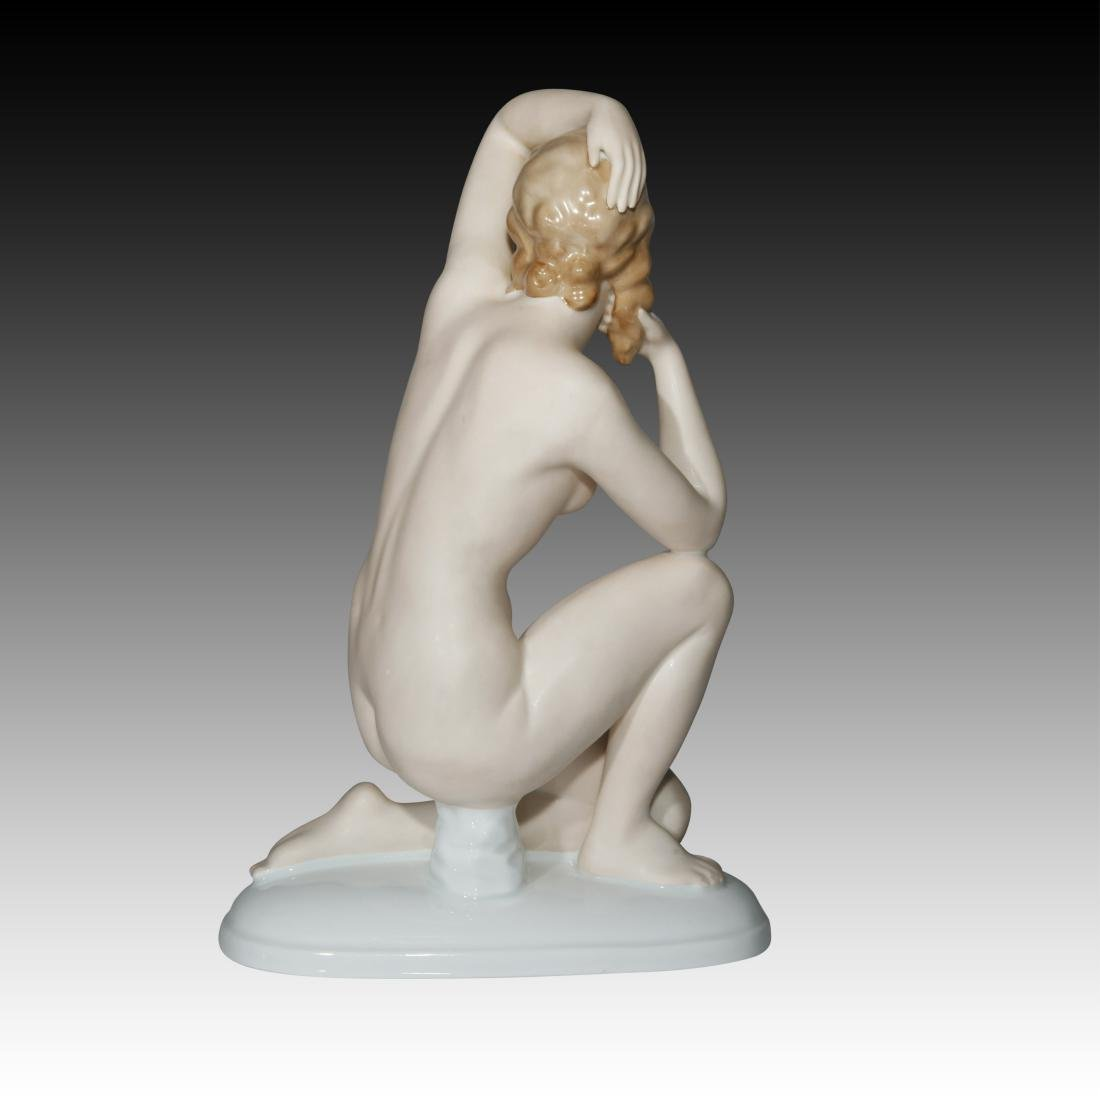 Gerold Porzellan Nude Woman on one knee Figurine - 3